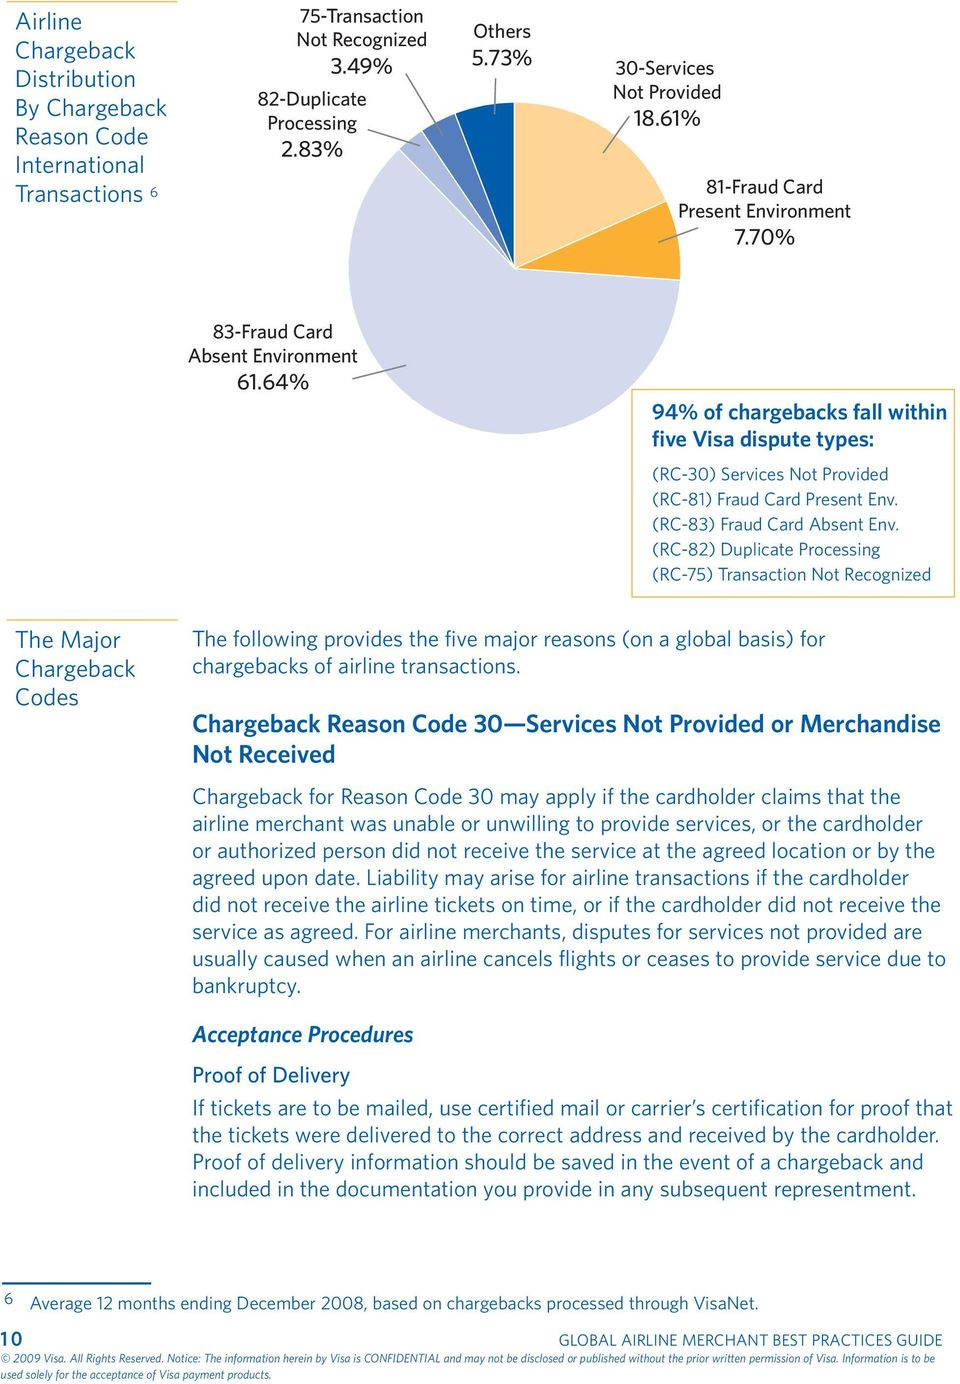 64% 94% of chargebacks fall within five Visa dispute types: (RC-30) Services Not Provided (RC-81) Fraud Card Present Env. (RC-83) Fraud Card Absent Env.